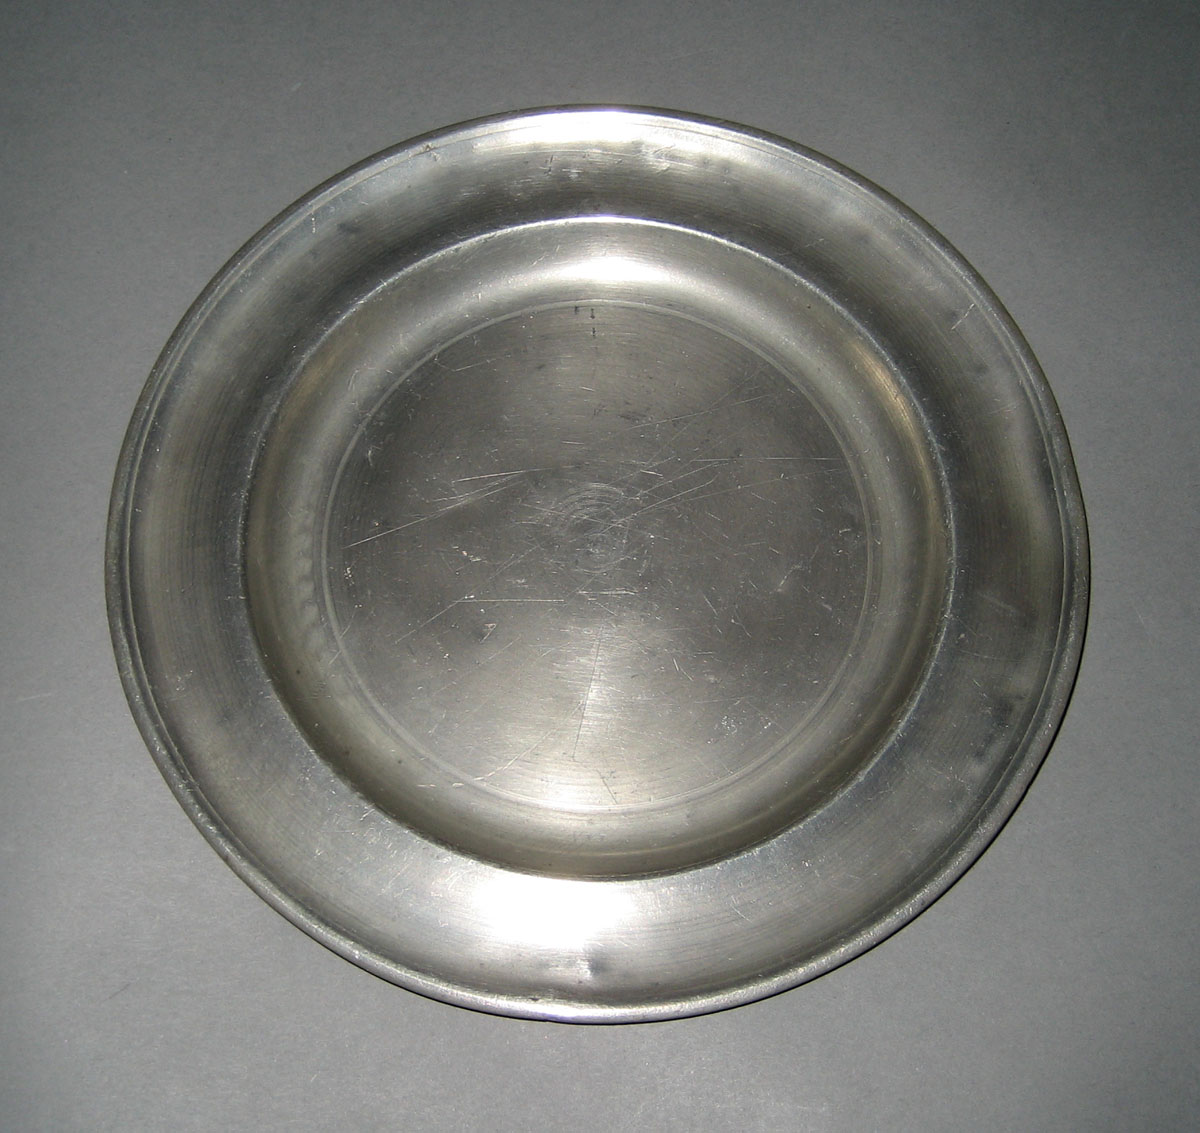 1956.0046.017 Plate